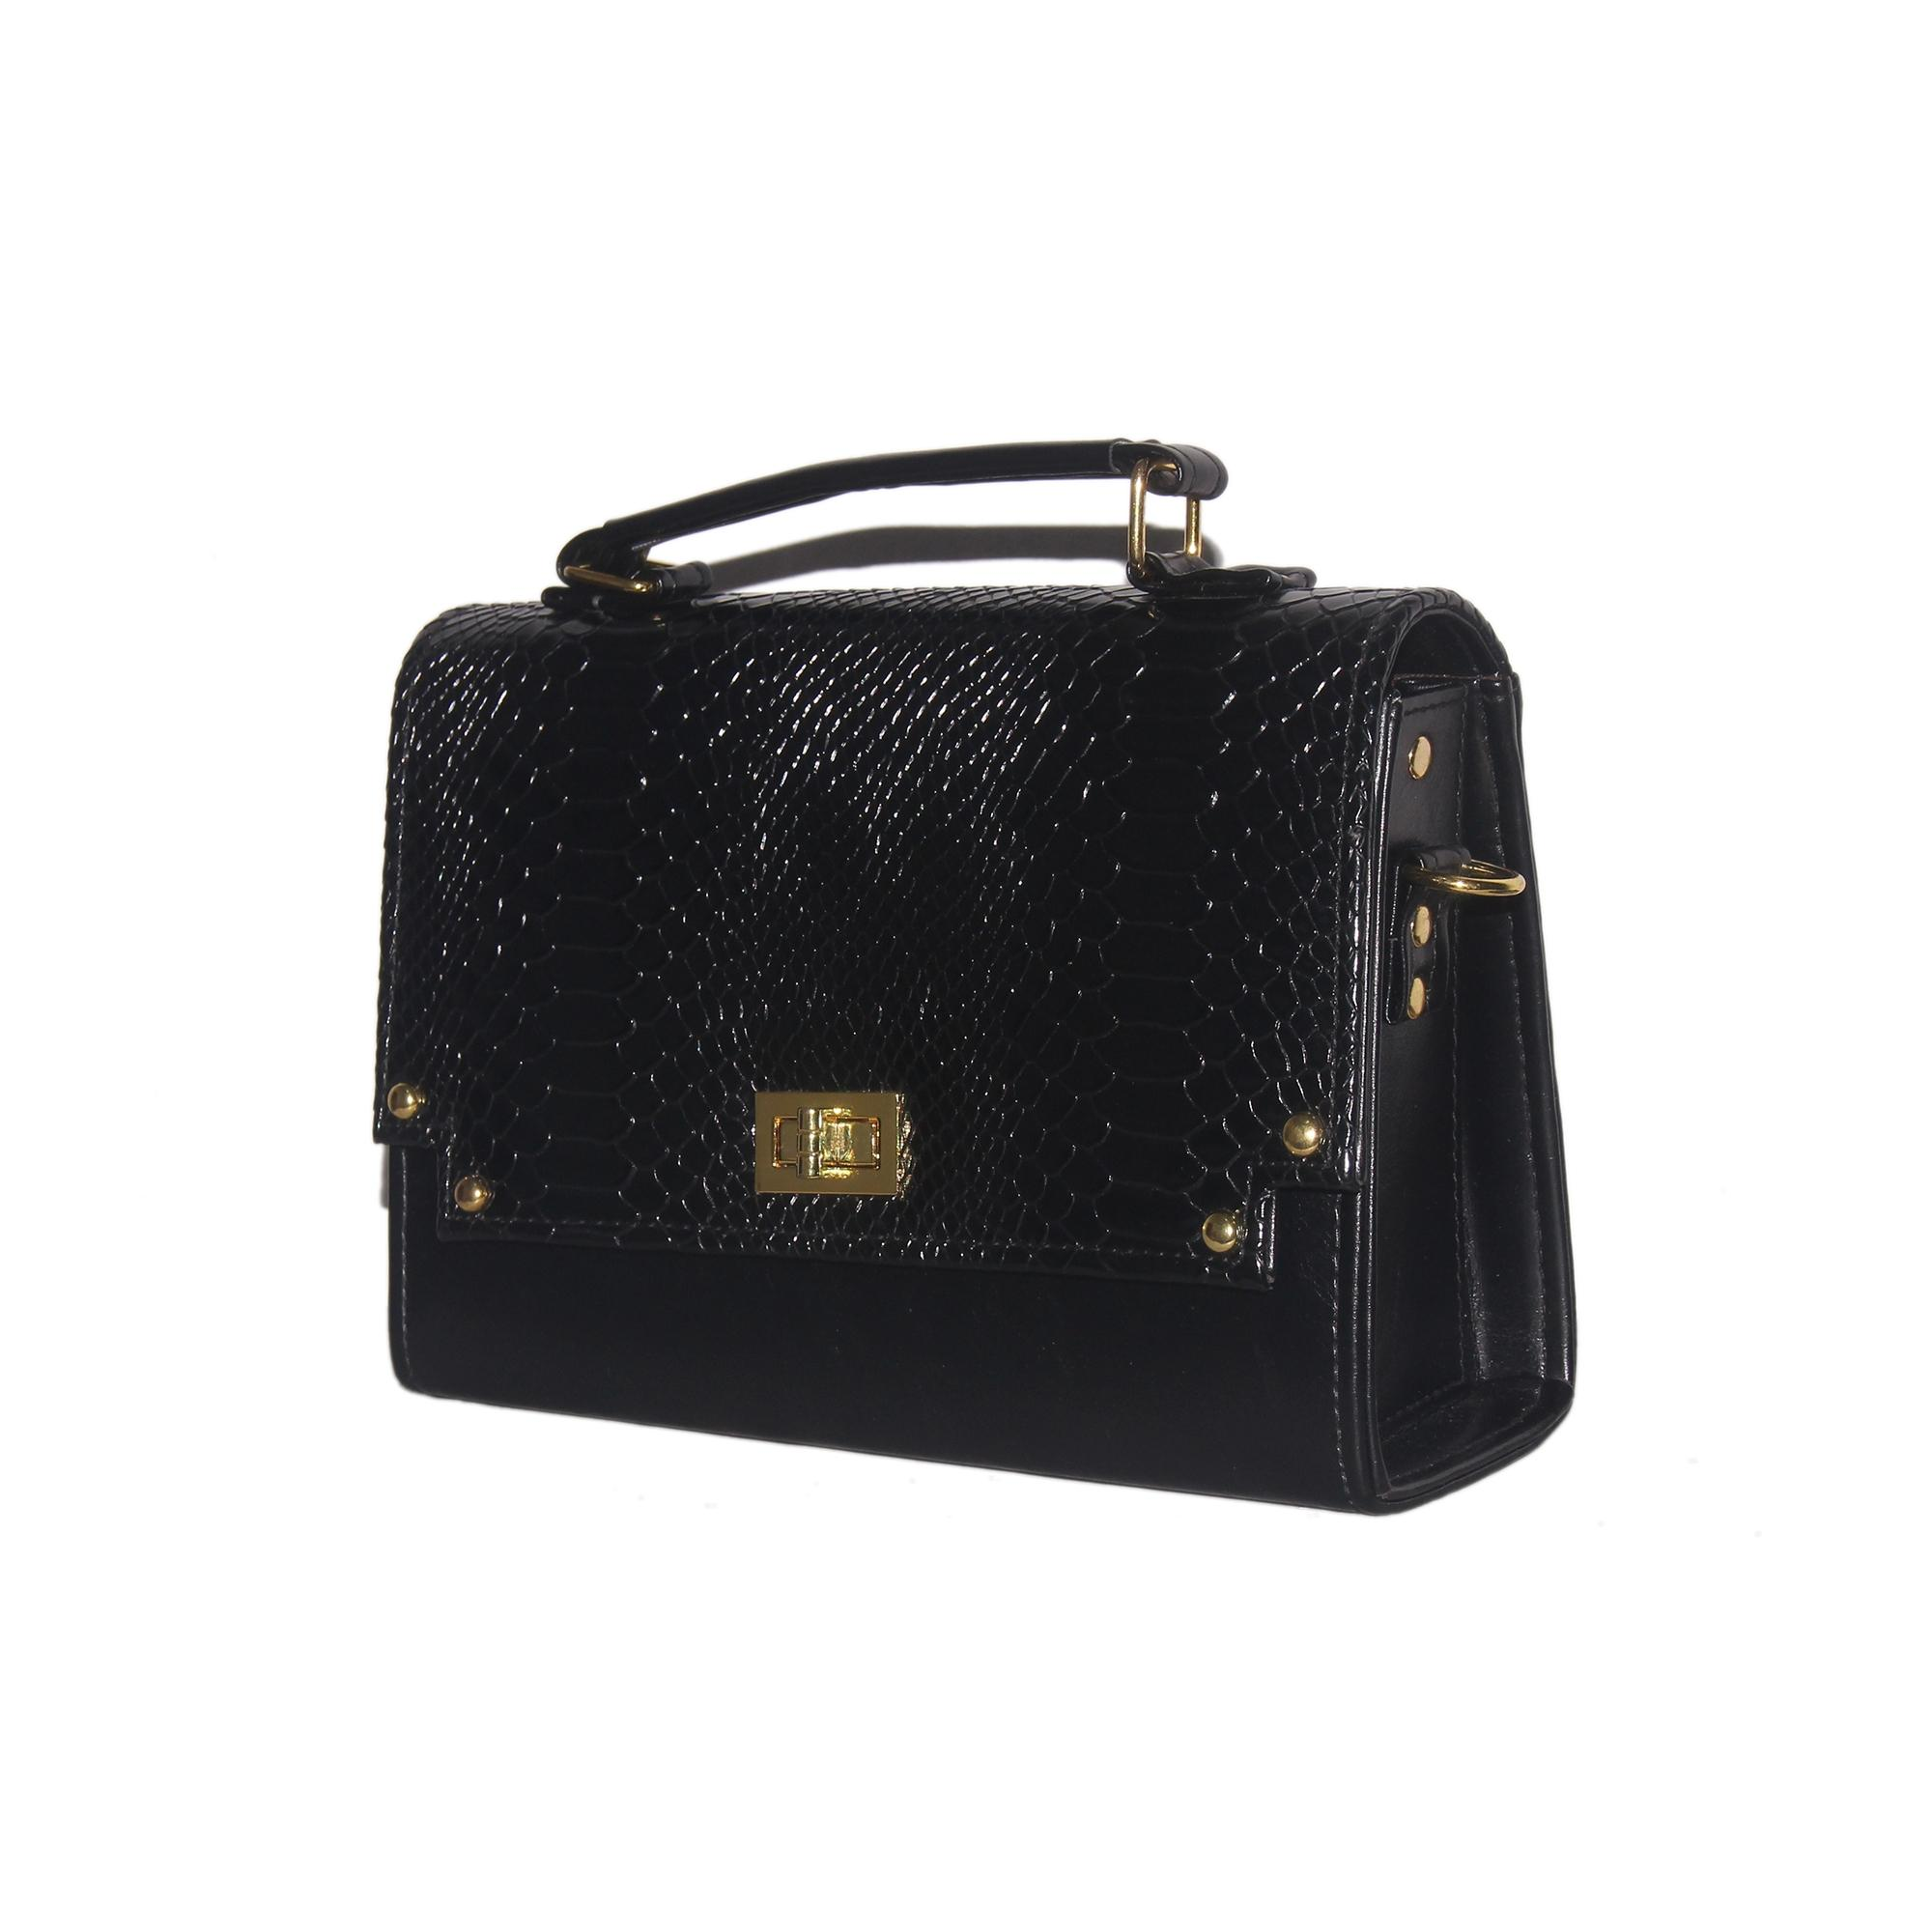 Women's Leather Hand Bag - Black